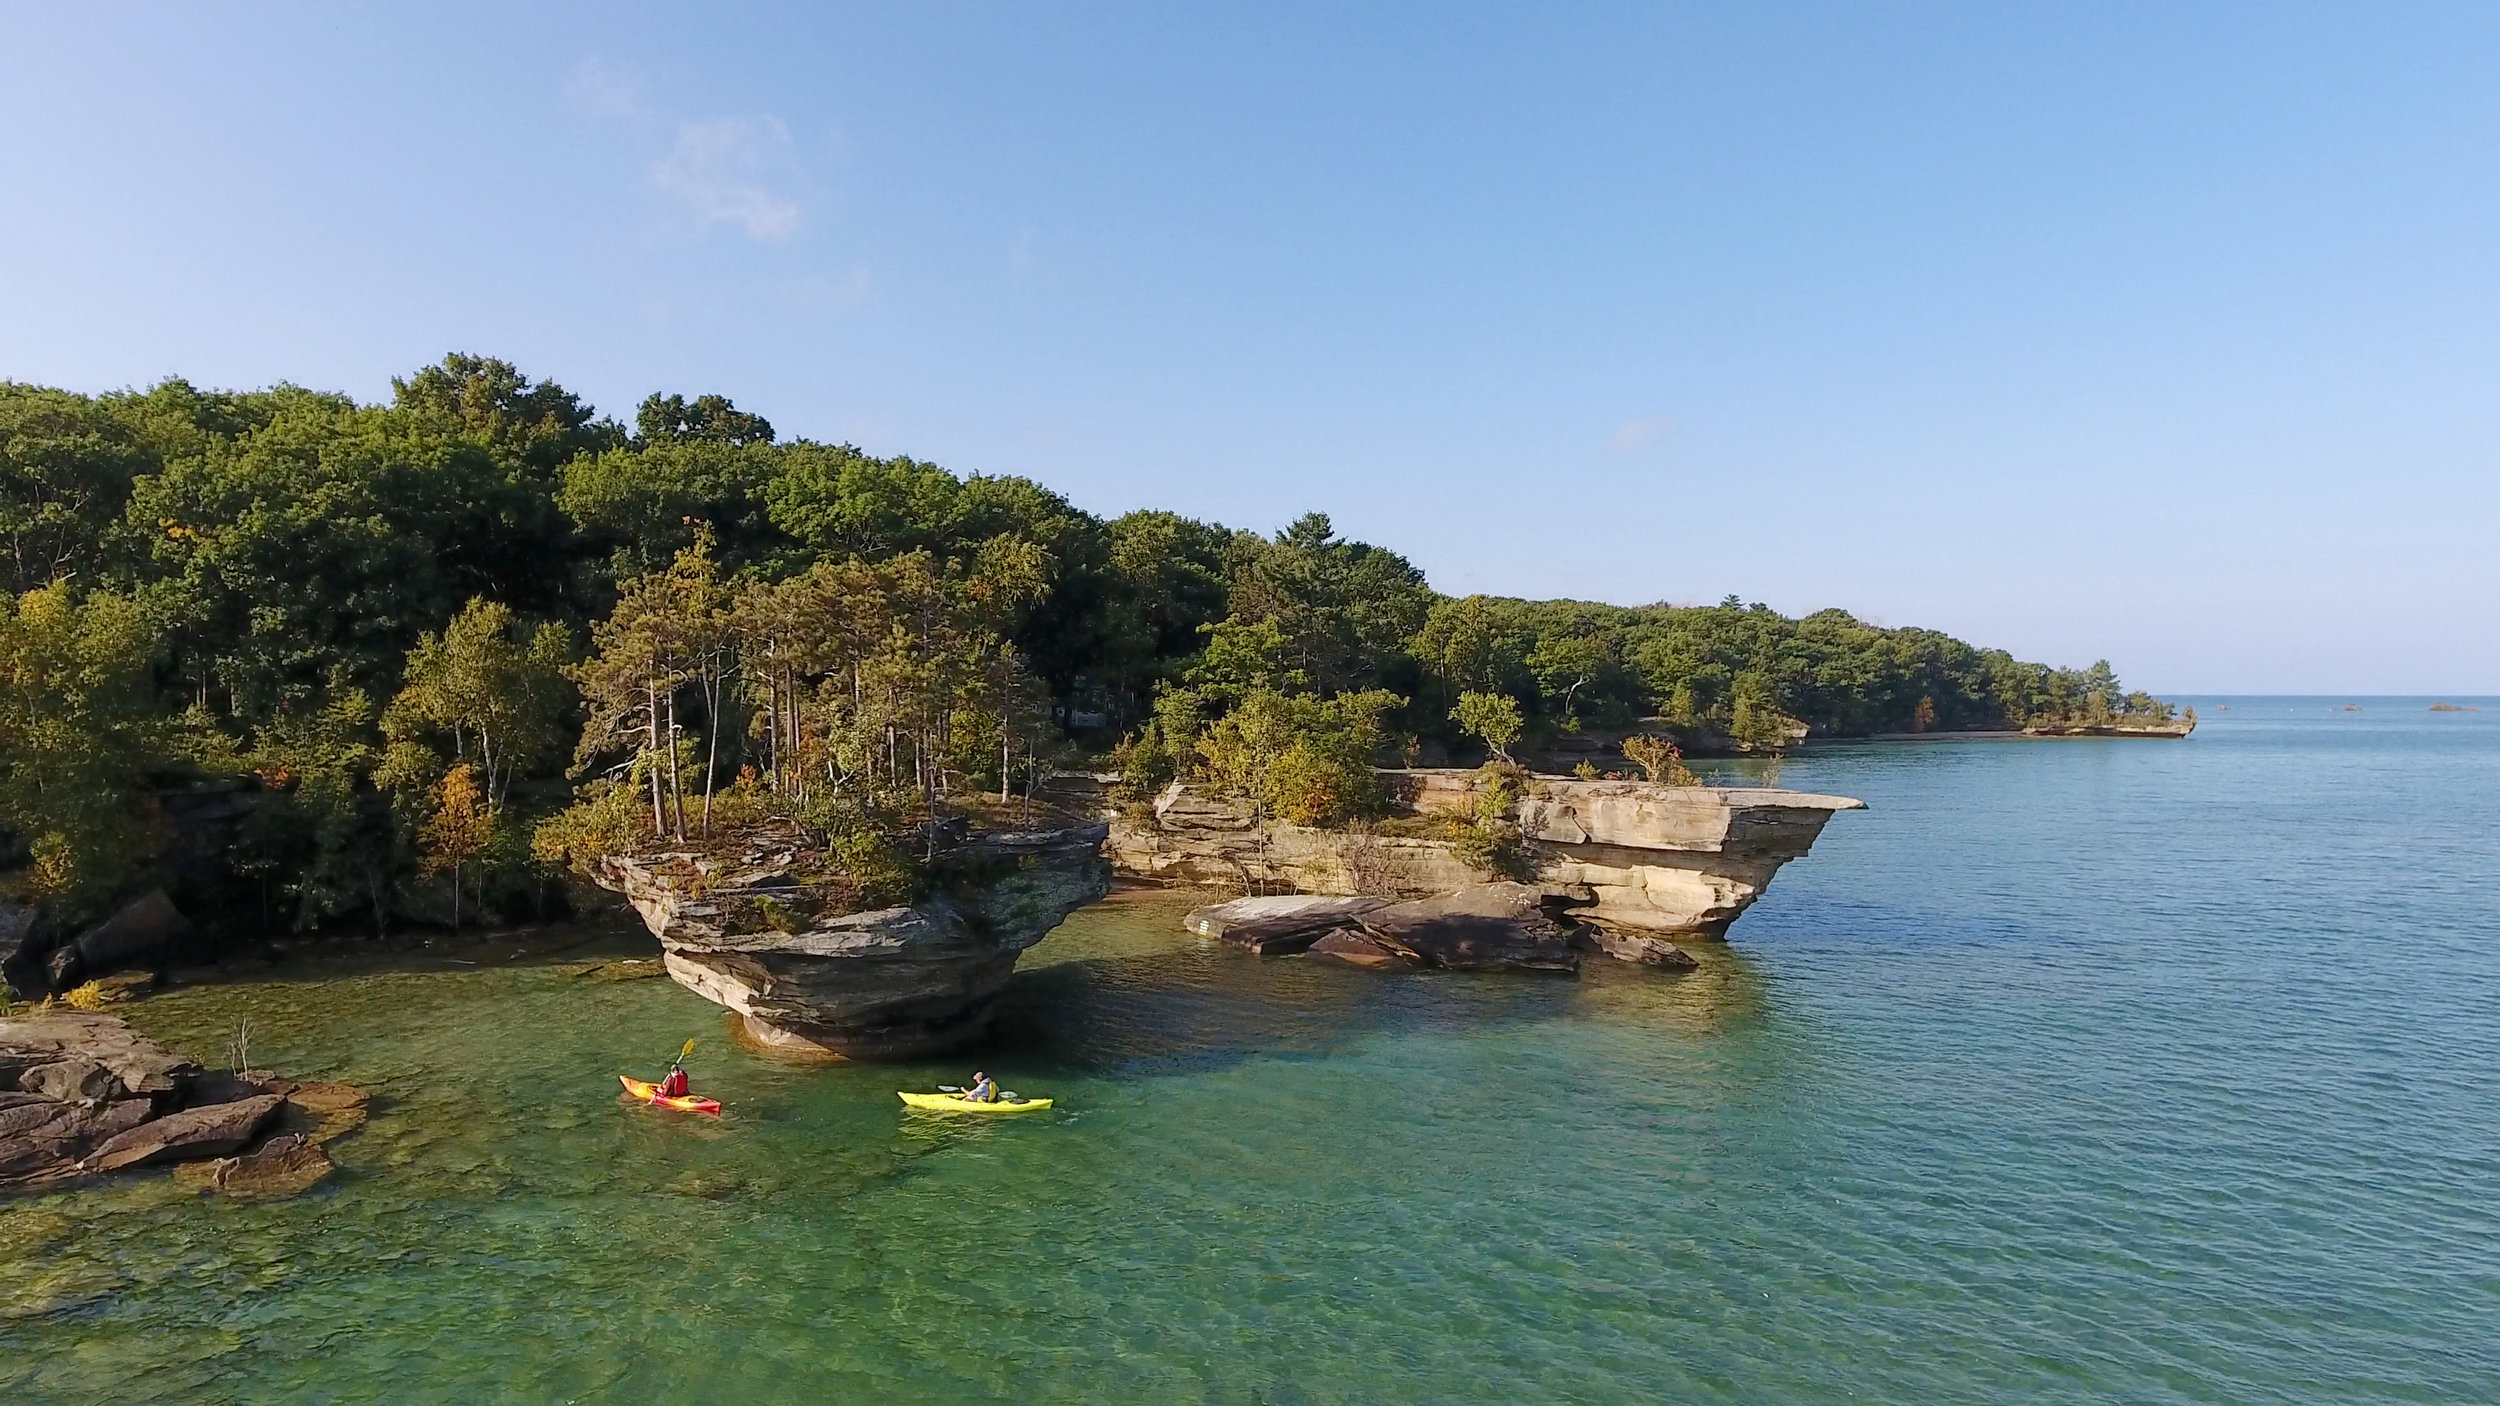 Turinp Rock with Kayakers for Chamber Cover.jpg